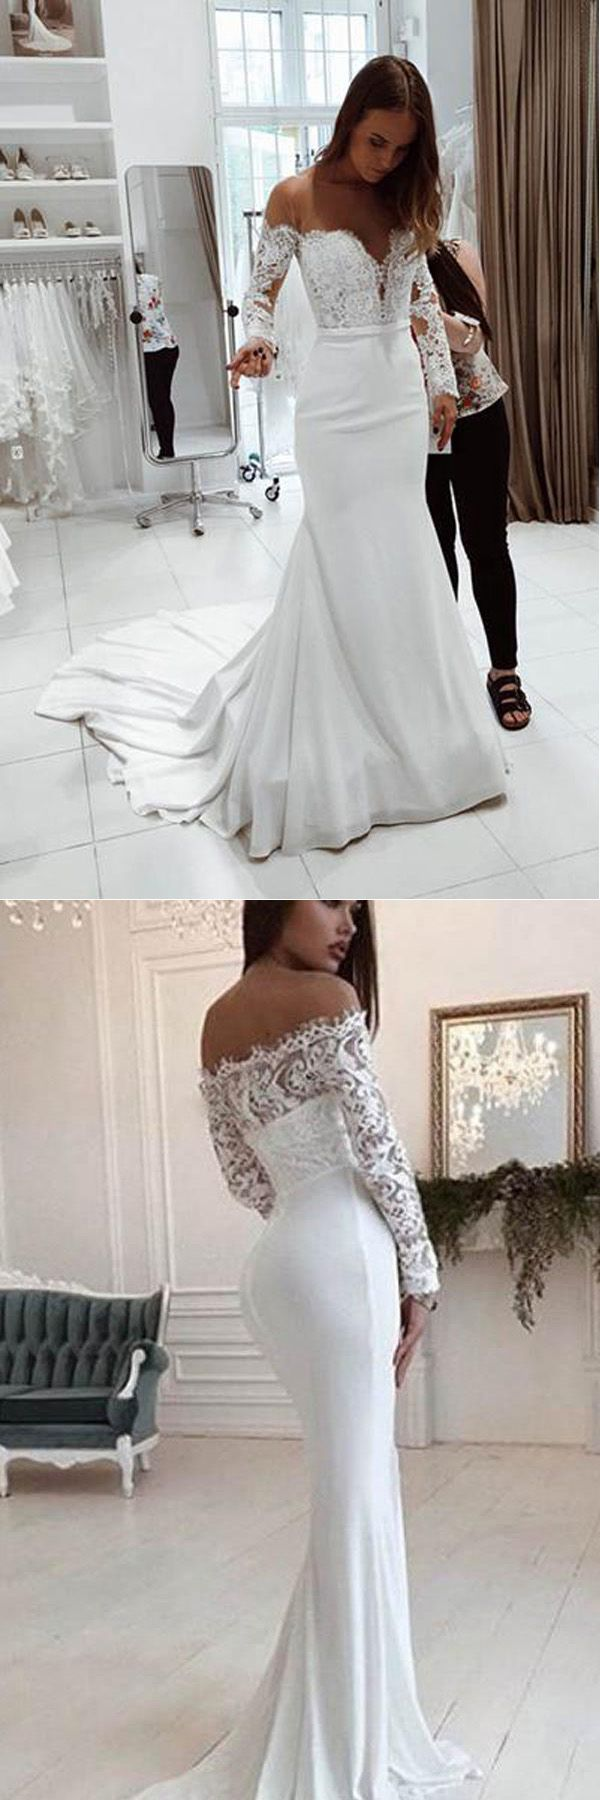 Lace dress gown  Mermaid Off the Shoulder Long Sleeves Sweep Train Wedding Dress with